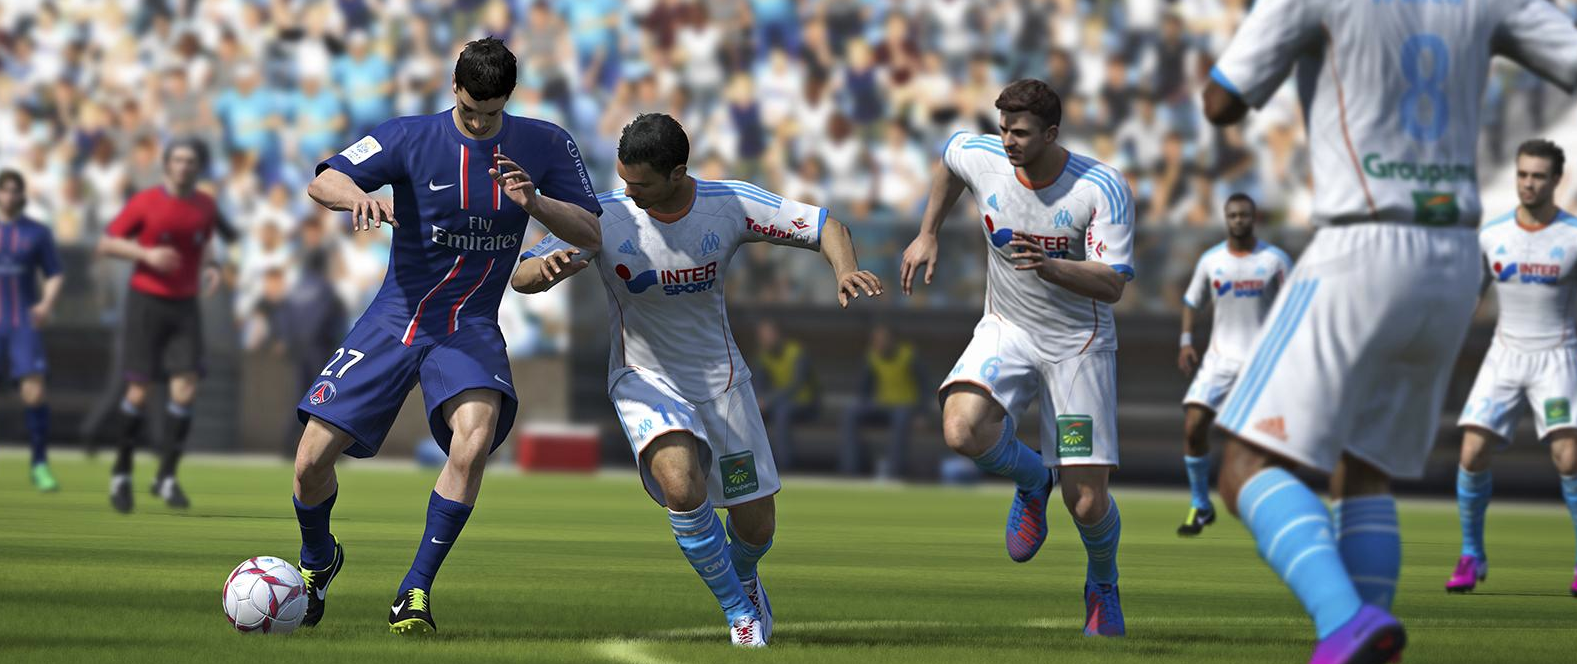 antihype fifa 15 screenshot 2